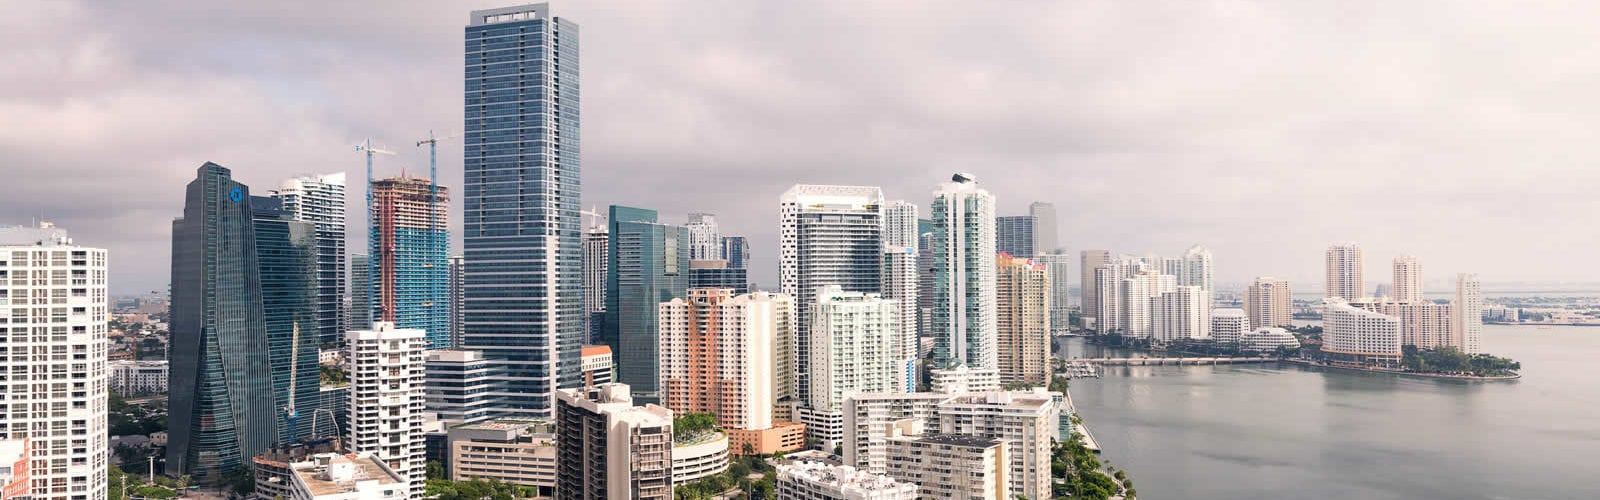 comment-investir-immobilier-placement-miami-francais-une